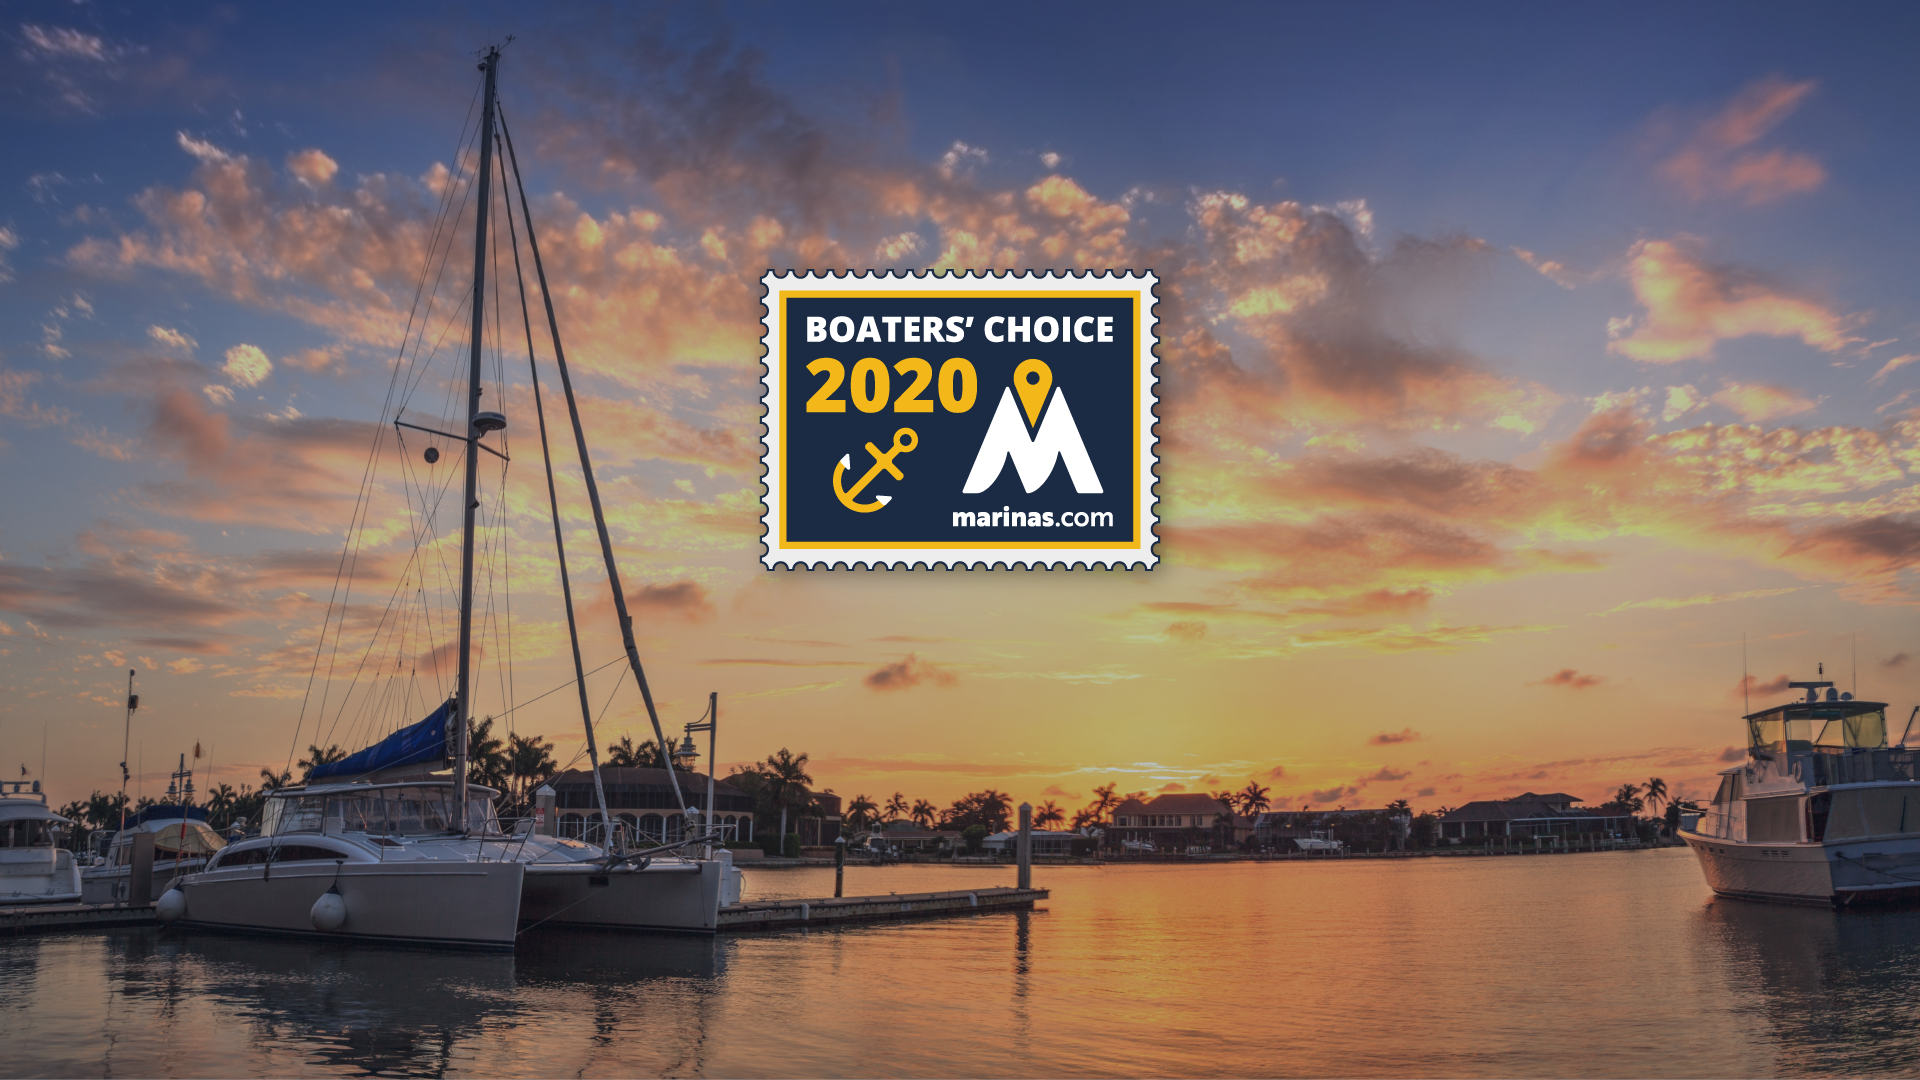 Announcing the 2020 Boaters' Choice Award Winners!